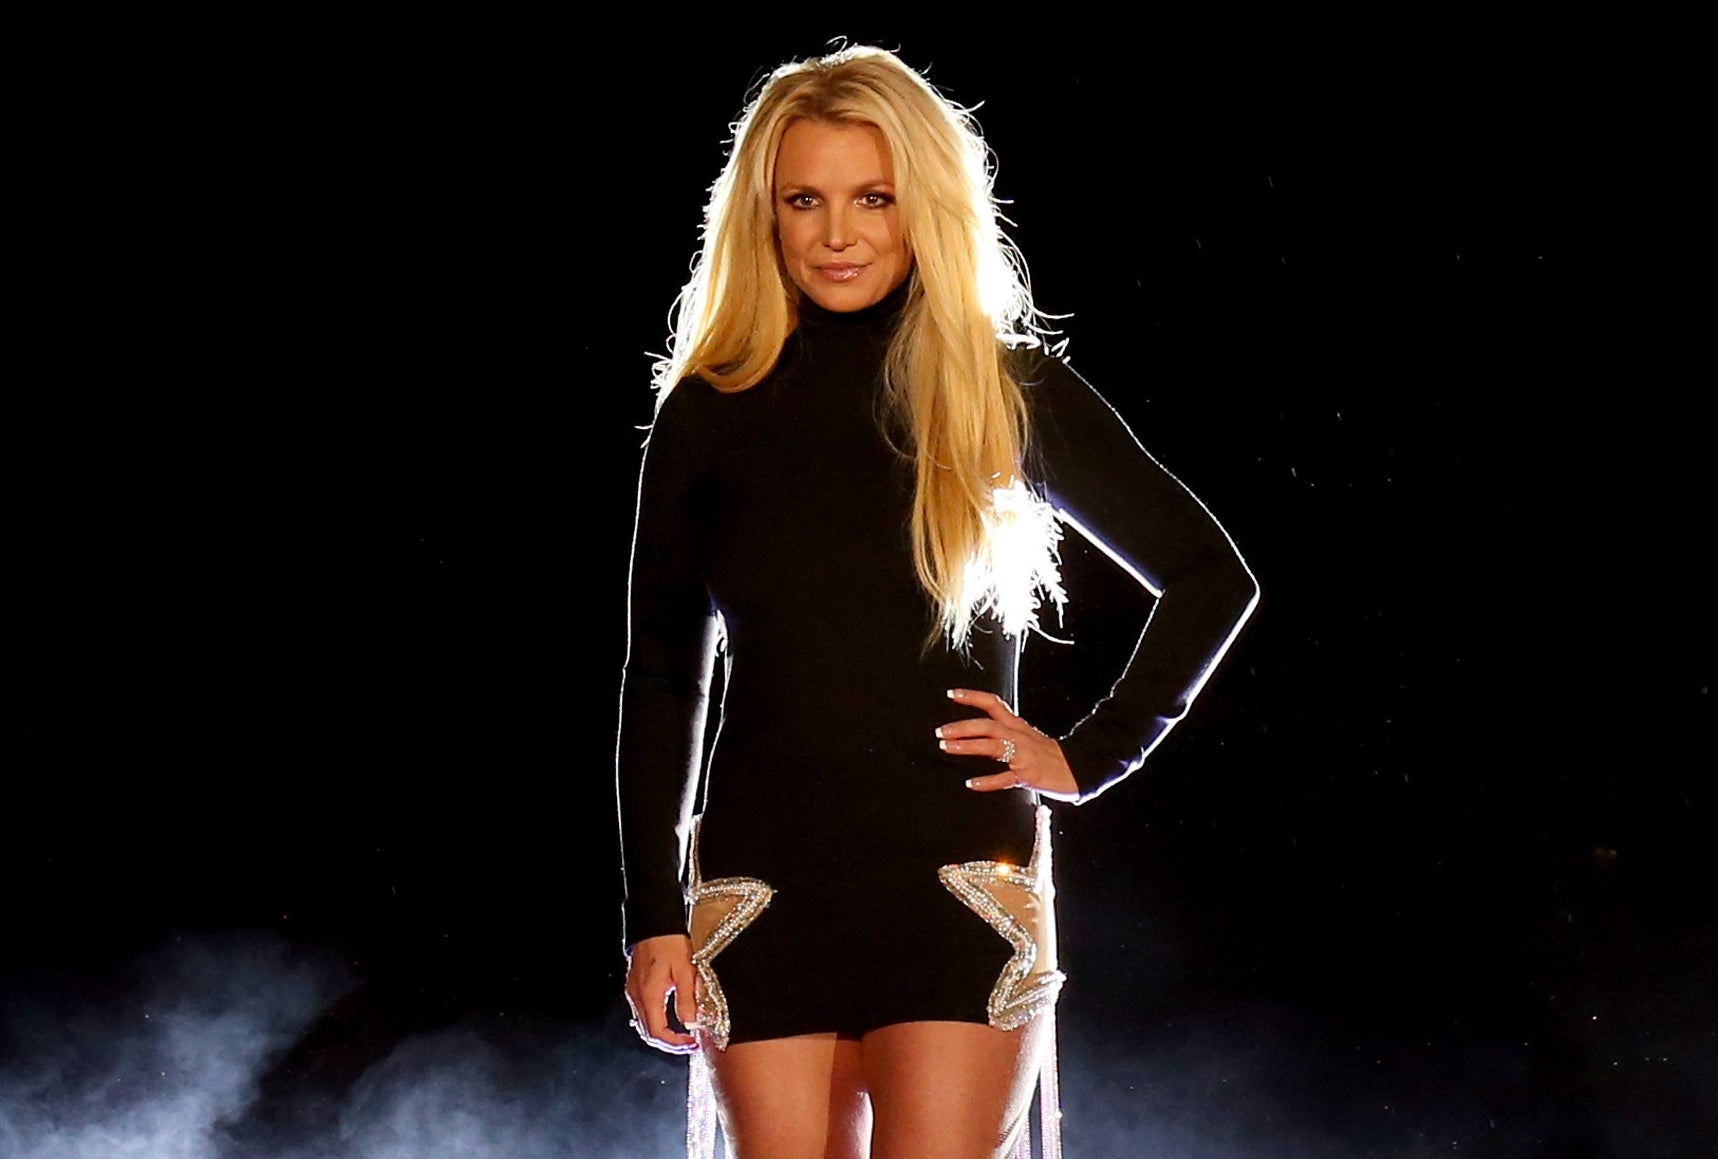 Britney poses with her hand on her hip while on stage at an event